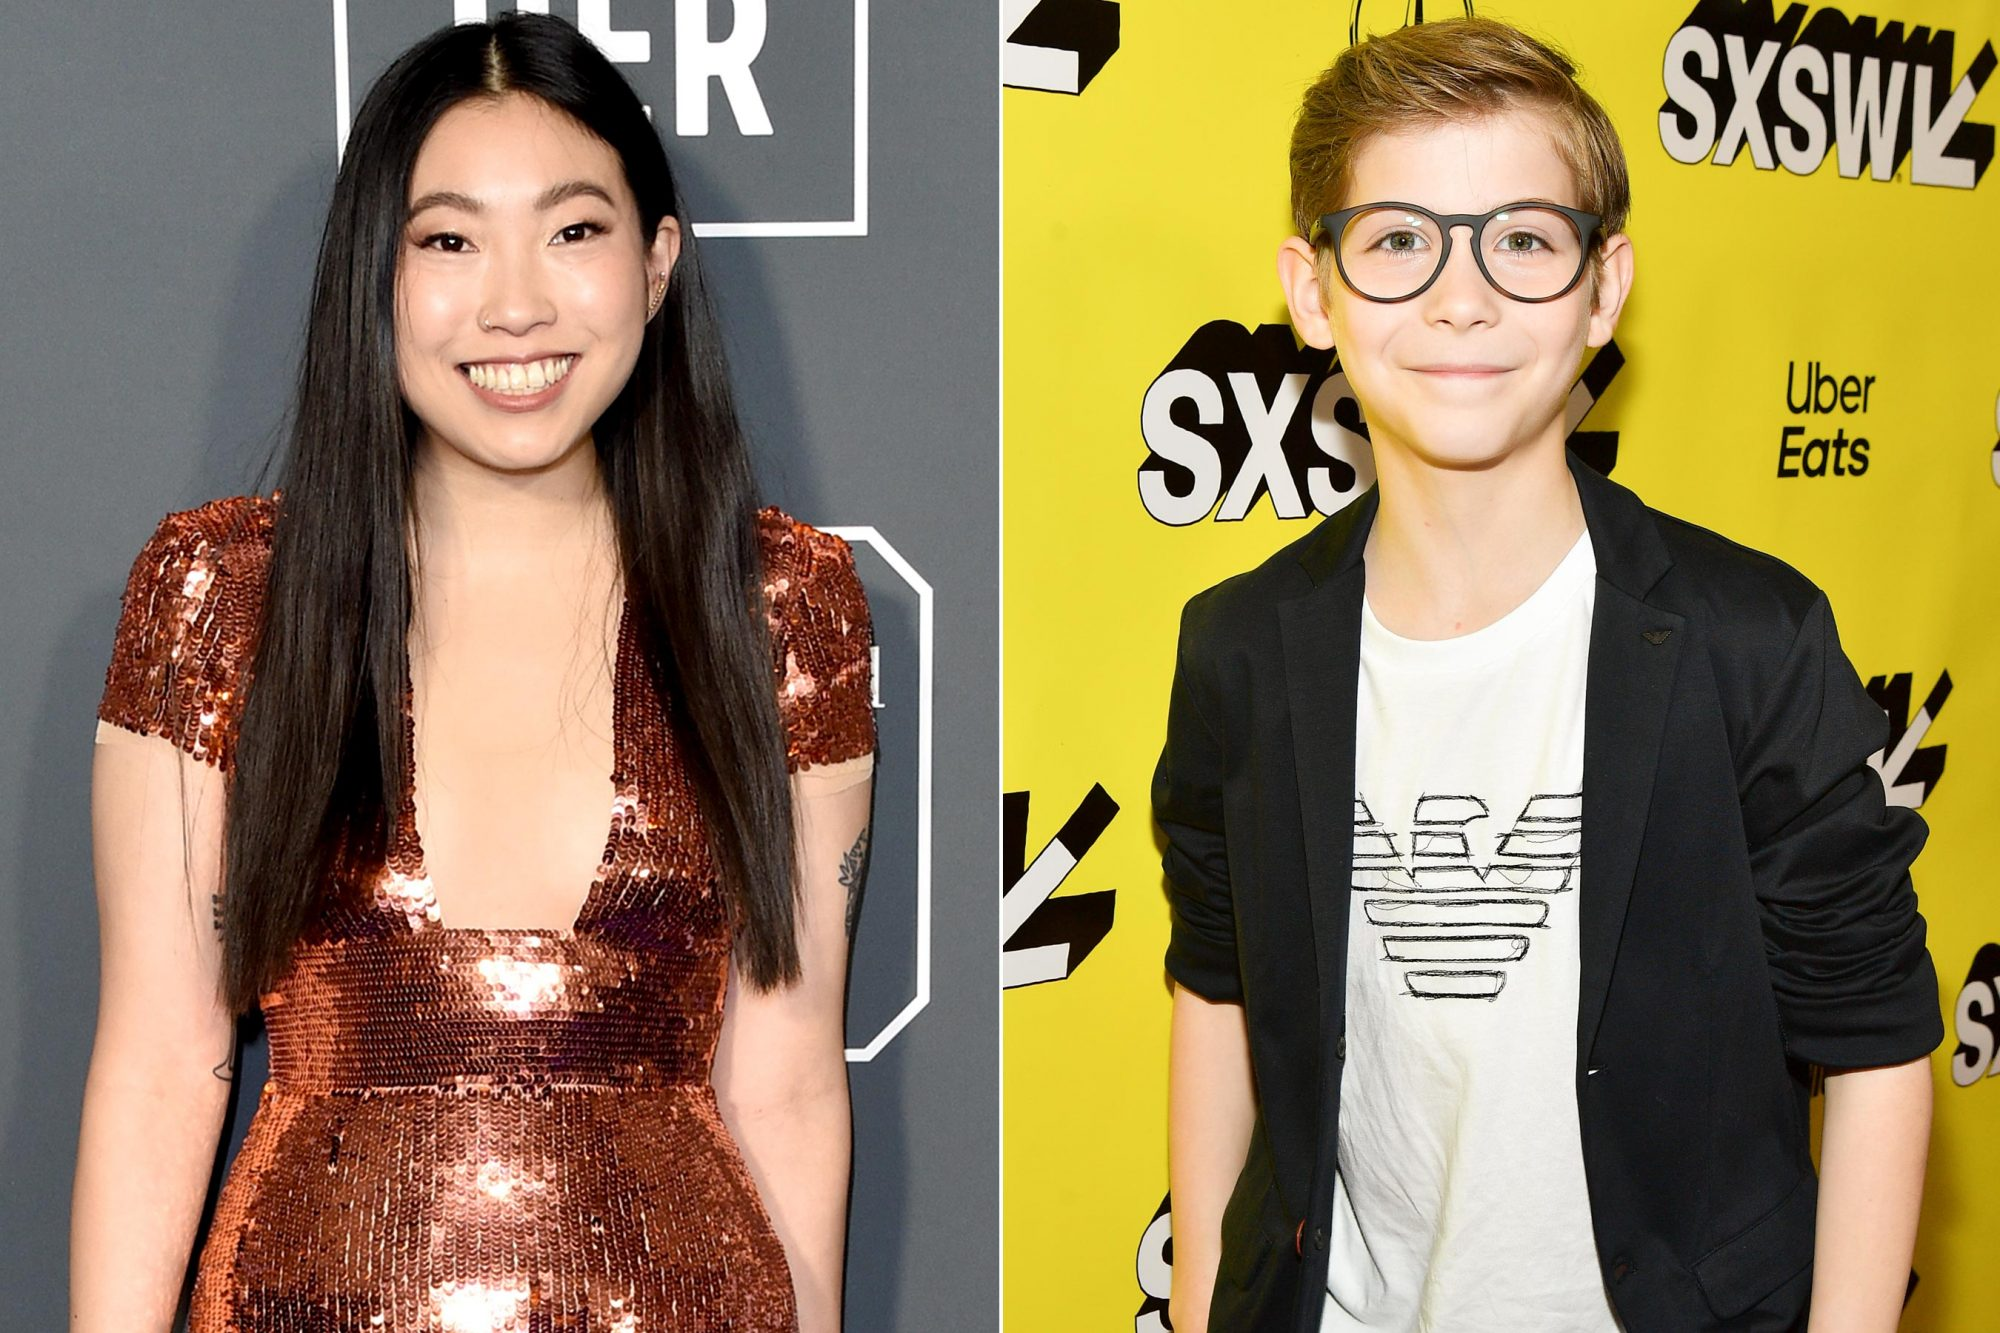 """SANTA MONICA, CA - JANUARY 13: Awkwafina attends the 24th Annual Critics' Choice Awards at Barker Hangar on January 13, 2019 in Santa Monica, California. (Photo by John Shearer/Getty Images) AUSTIN, TEXAS - MARCH 11: Jacob Tremblay attends the """"Good Boys"""" Premiere 2019 SXSW Conference and Festivals at Paramount Theatre on March 11, 2019 in Austin, Texas. (Photo by Matt Winkelmeyer/Getty Images for SXSW)"""